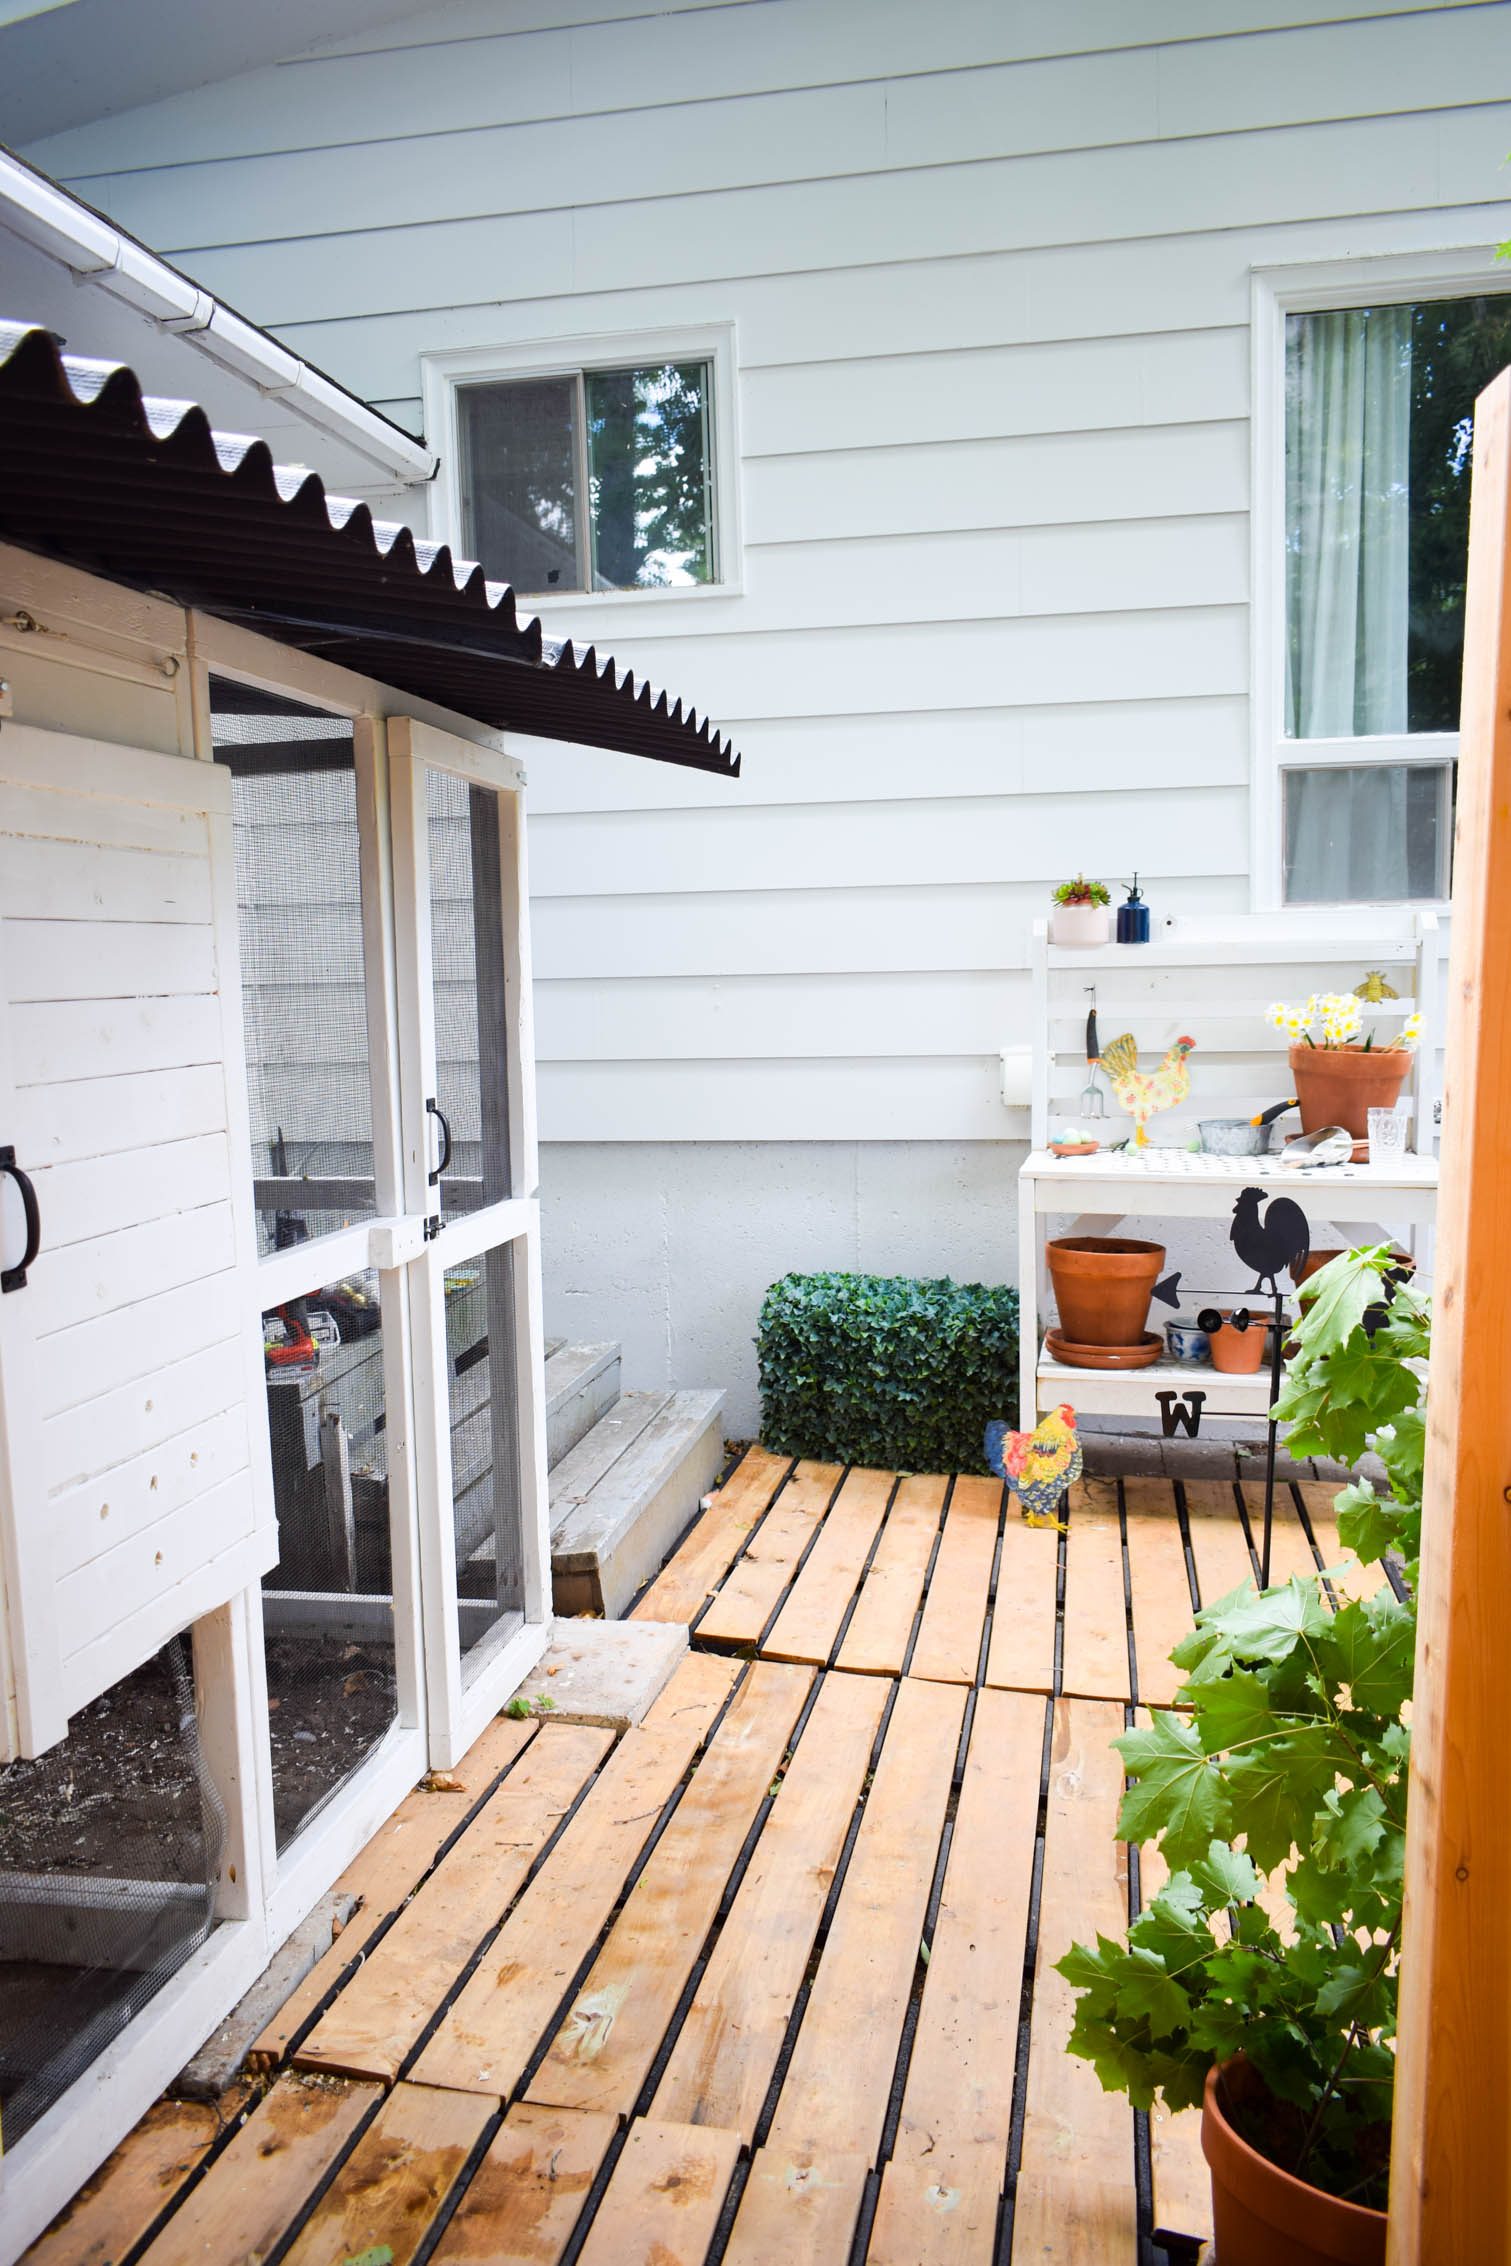 have you ever wondered how to build a deck on an uneven surface? With the Multy Deck system, it's easier than ever! Head to the blog for more info.